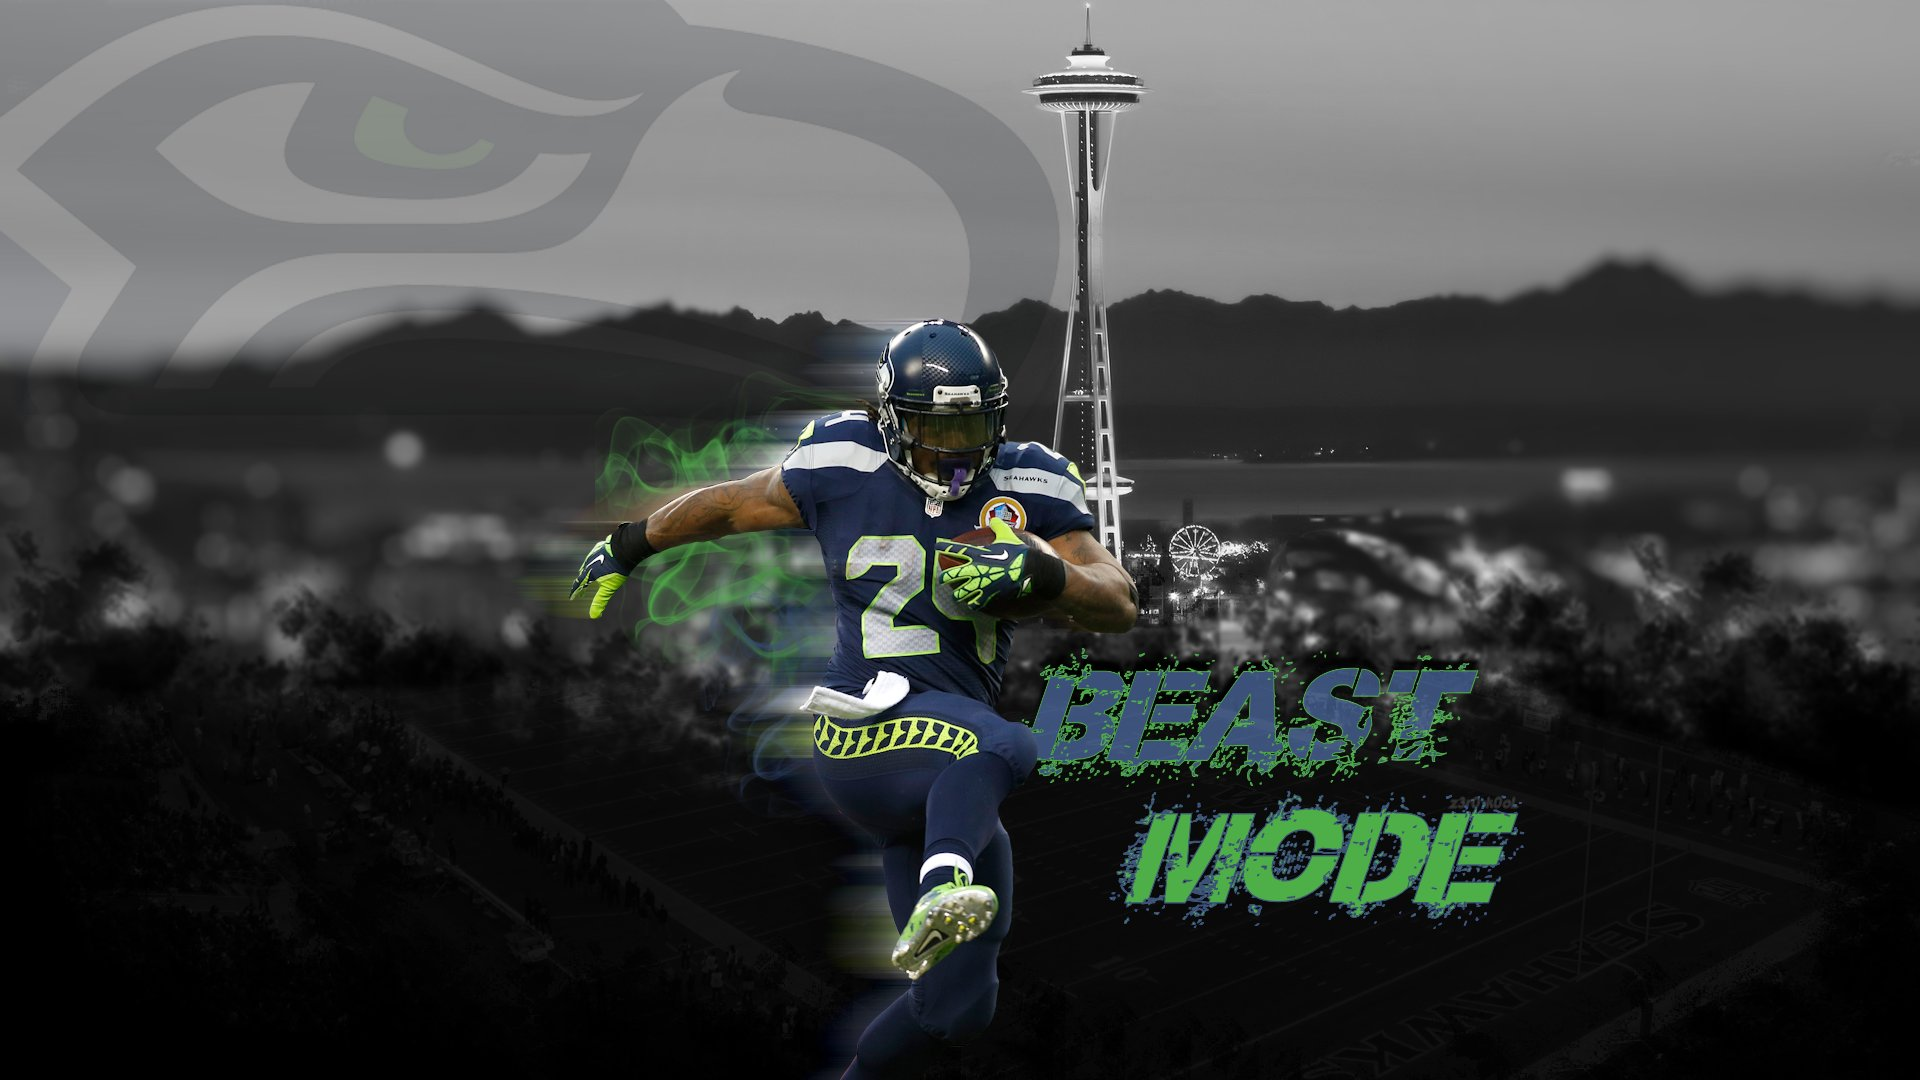 SEATTLE SEAHAWKS nfl football 1 wallpaper 1920x1080 247722 1920x1080